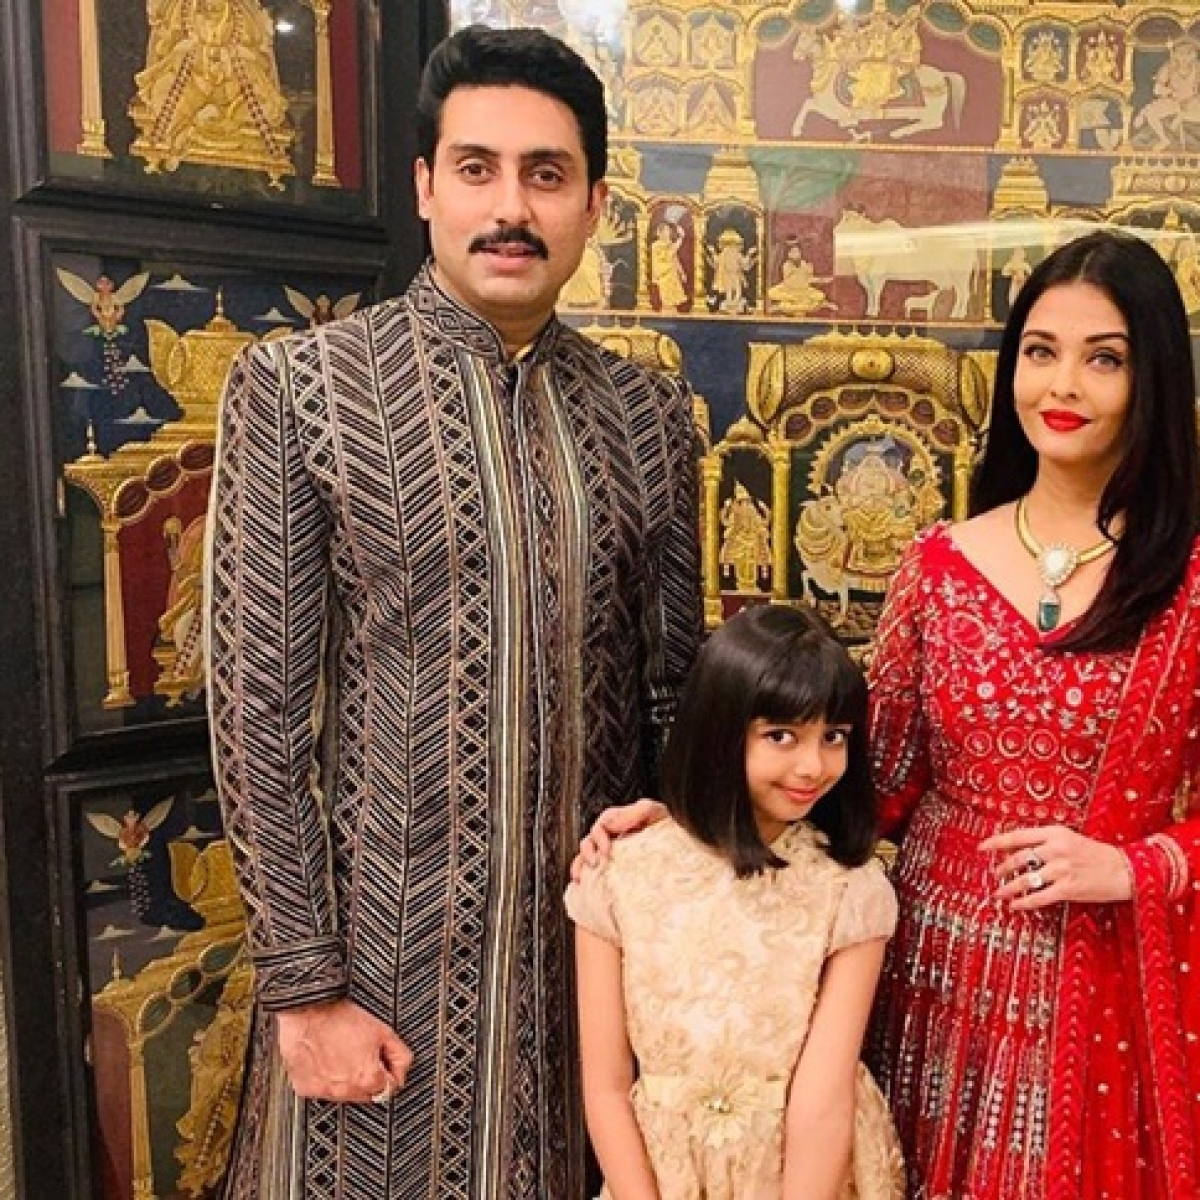 Aishwarya, Aaradhya, and Abhishek Bachchan pose for a 'royal family' picture